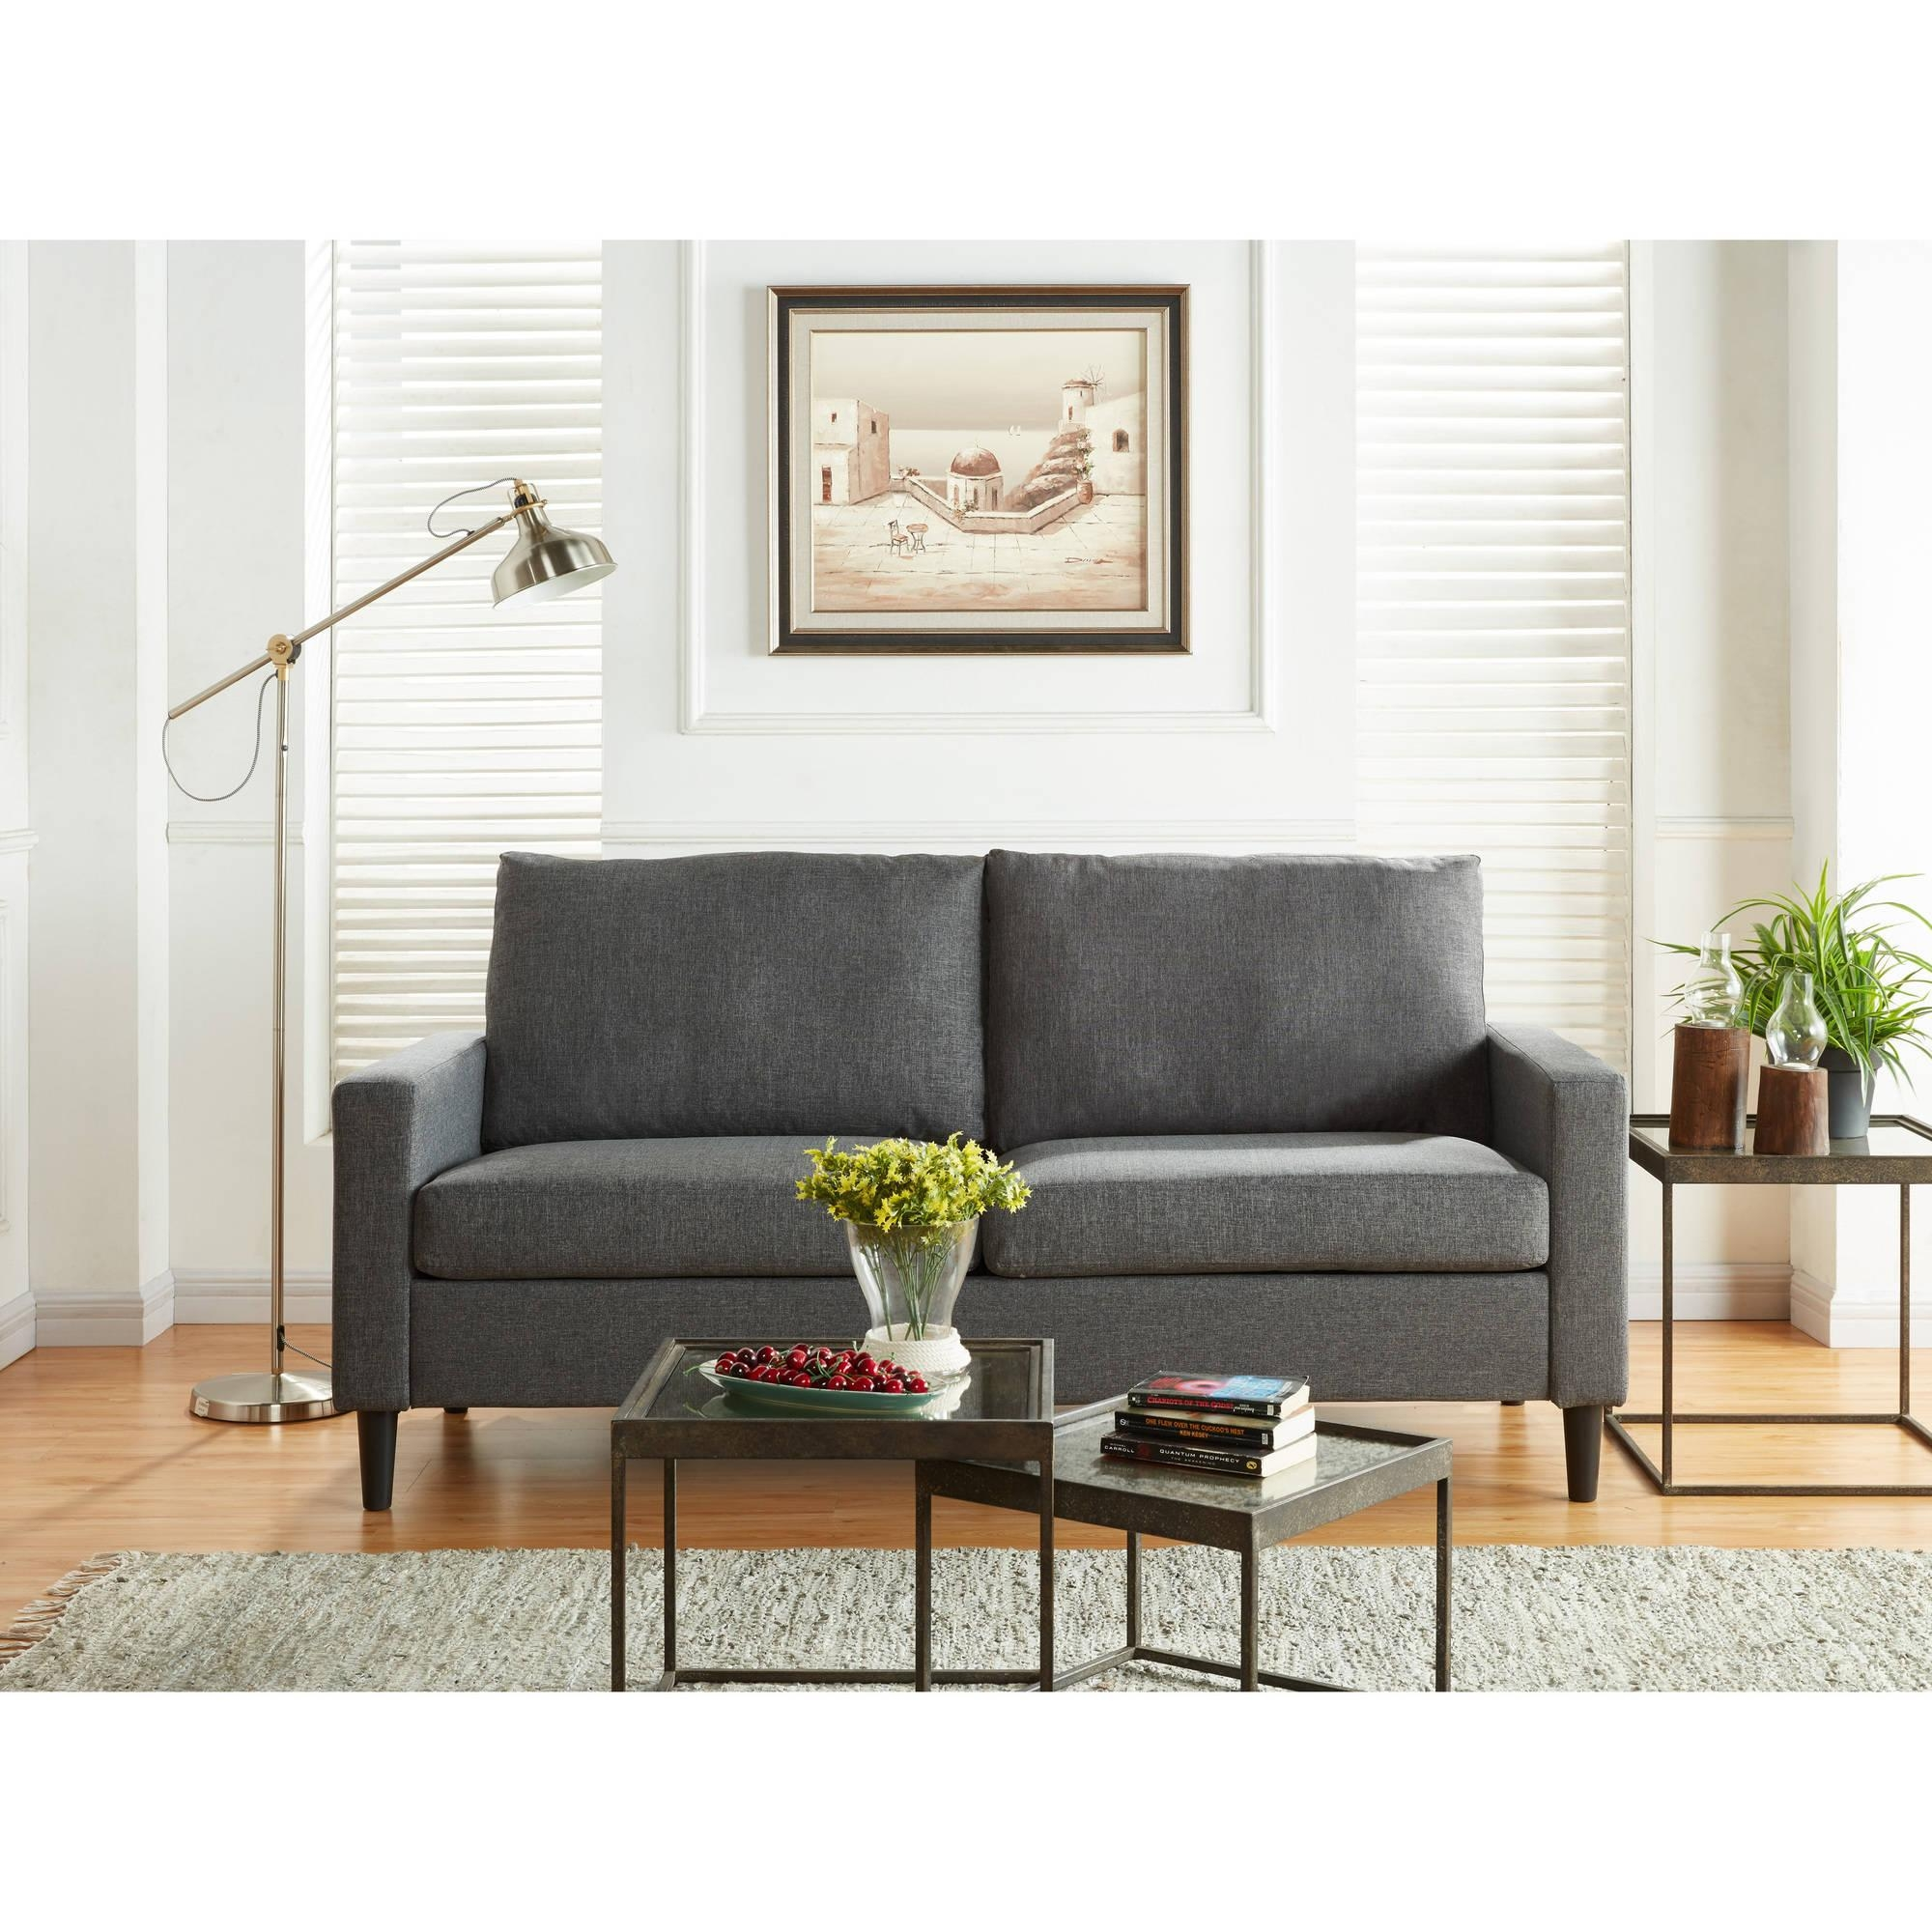 Mainstays Apartment Sofa, Multiple Colors – Walmart For Mainstays Sleeper Sofas (View 12 of 20)